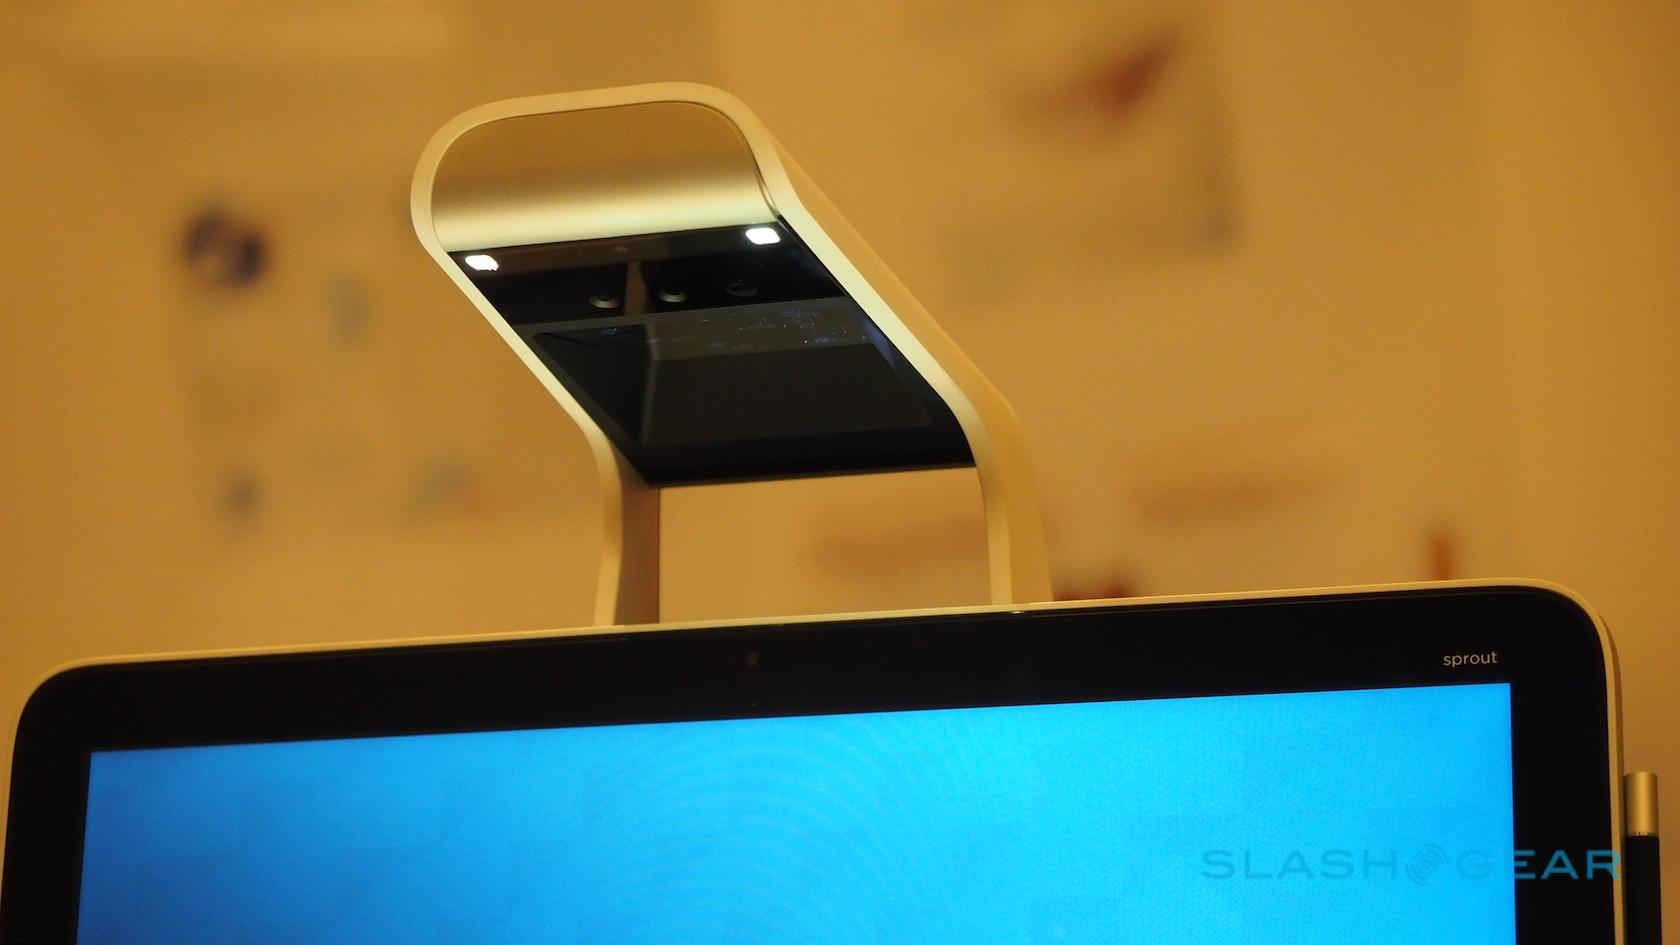 HP Sprout Pro hands-on: 3D-scanning PC action on another level